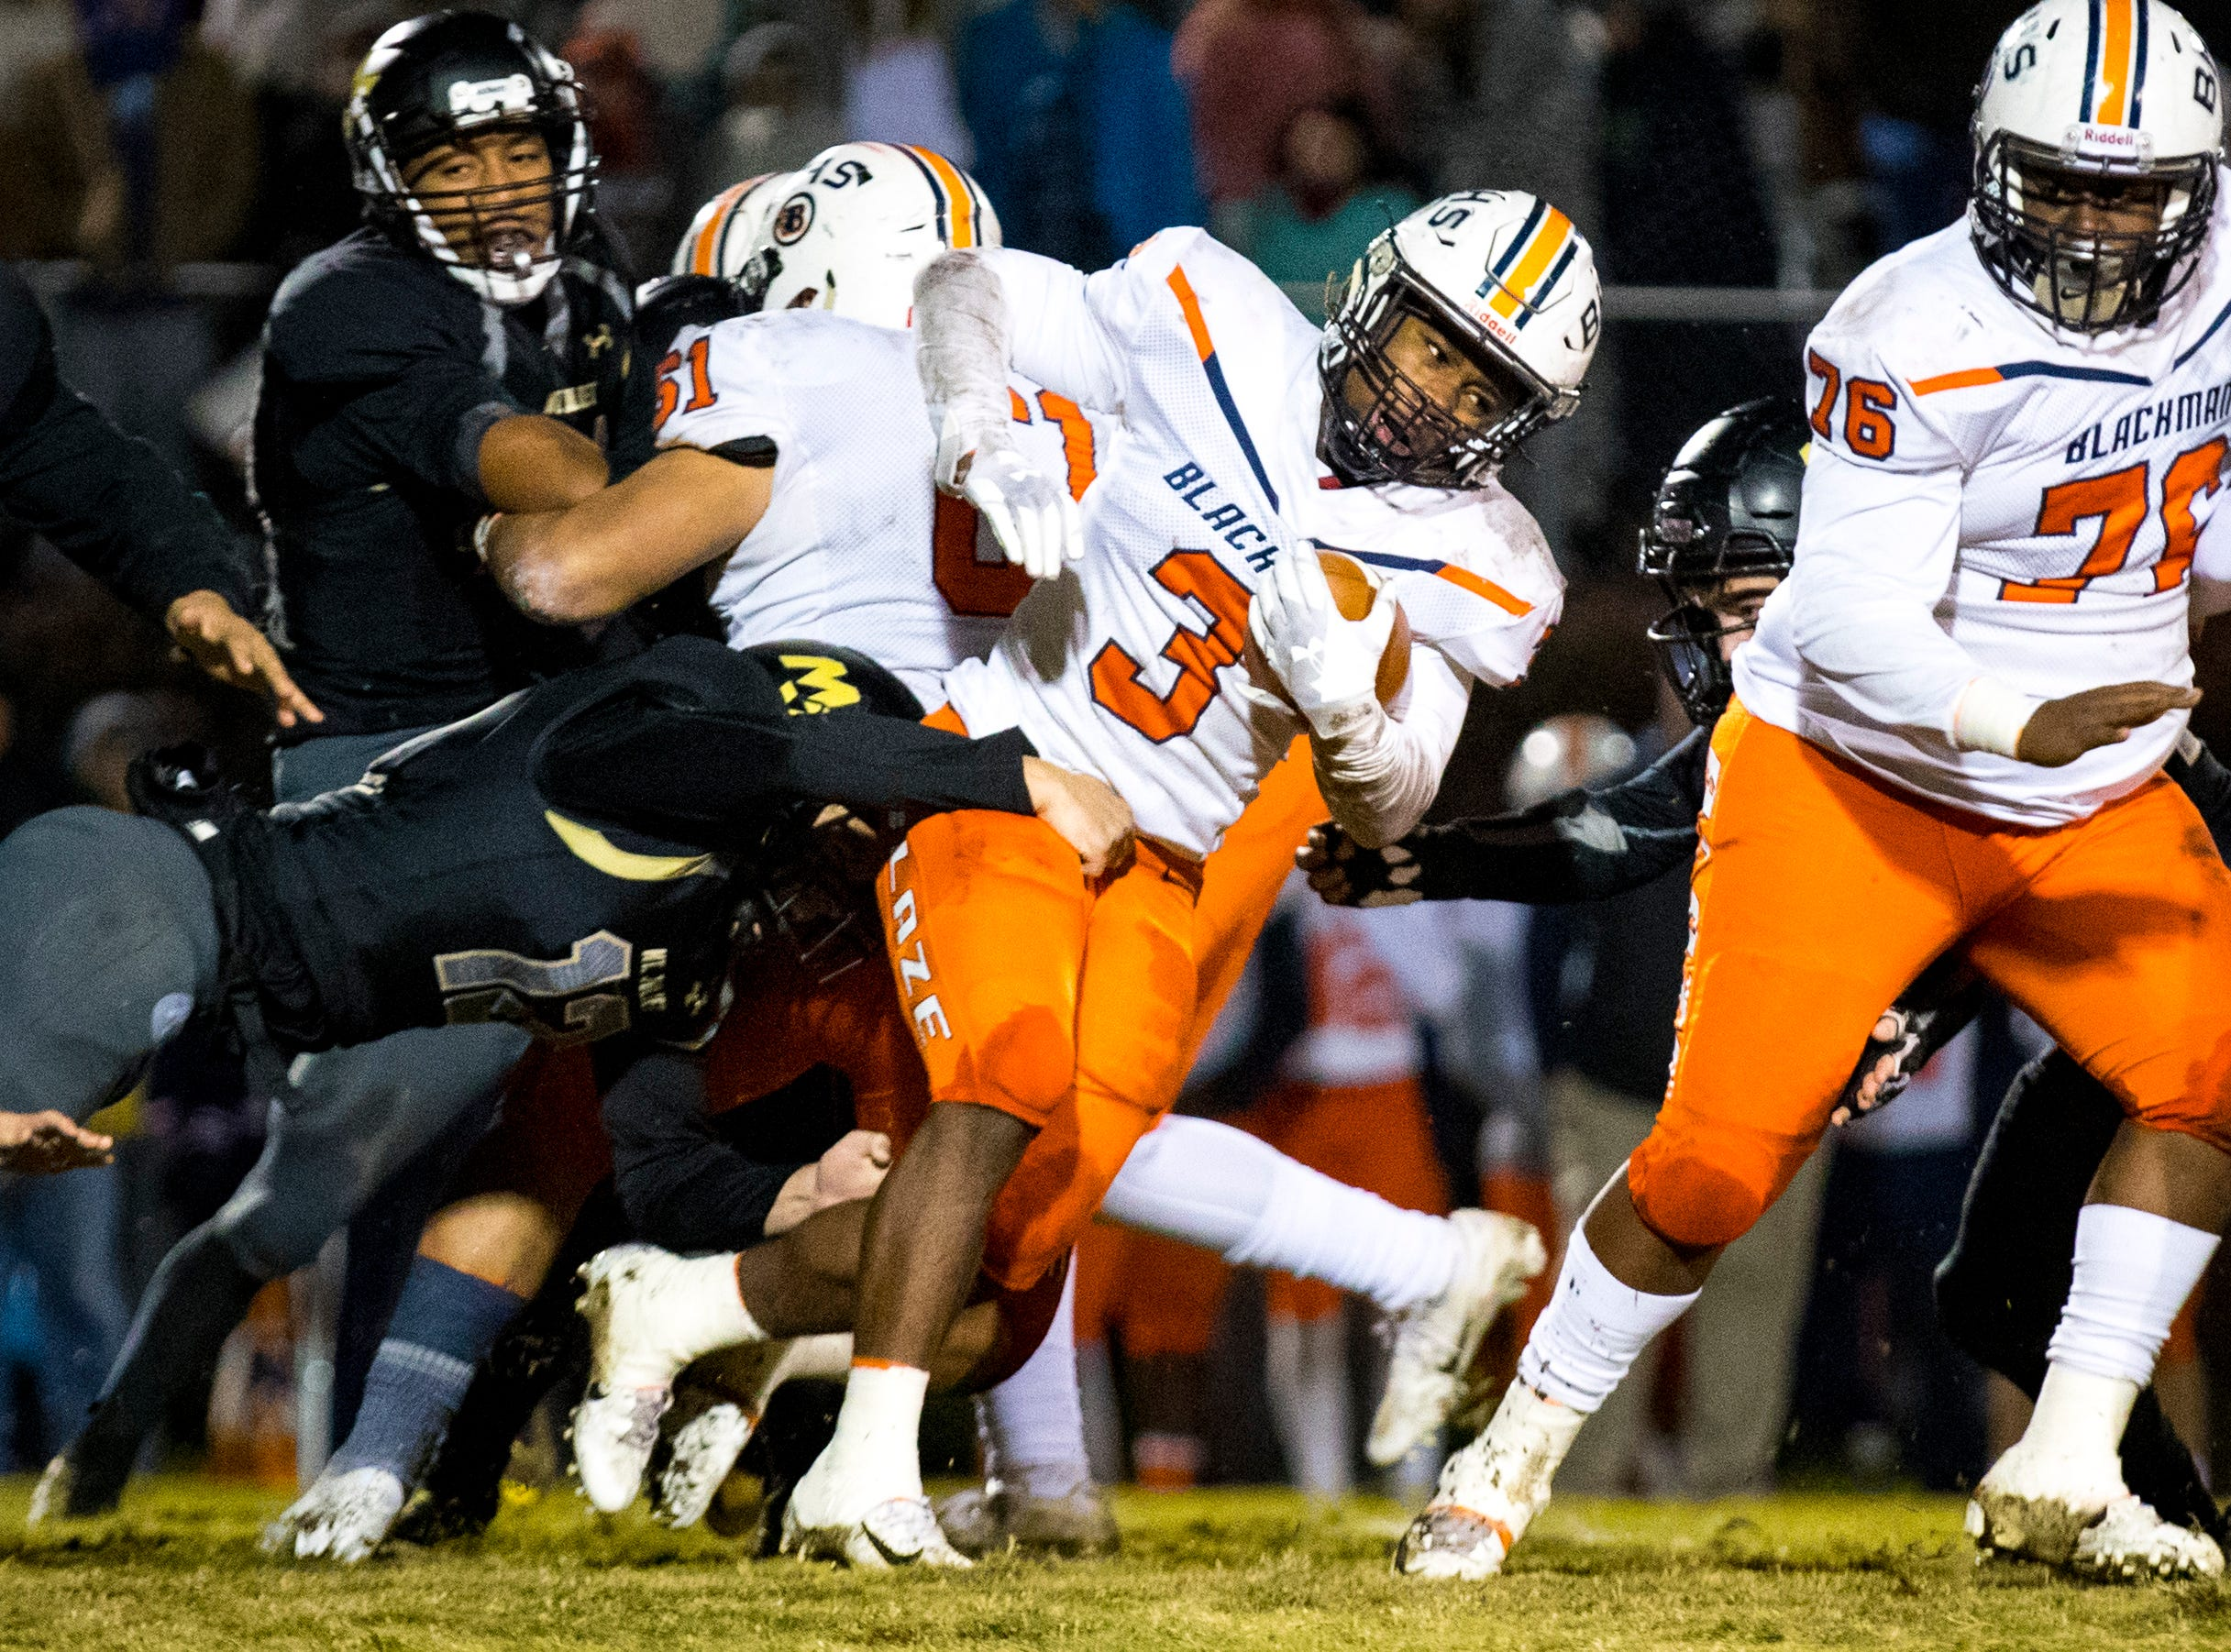 Mt. Juliet's Cage Ellis (12) holds onto Blackman's Ta'Micus Napier (3) during Mt. Juliet's game against Blackman at Mt. Juliet High School in Mt. Juliet on Friday, Nov. 9, 2018.